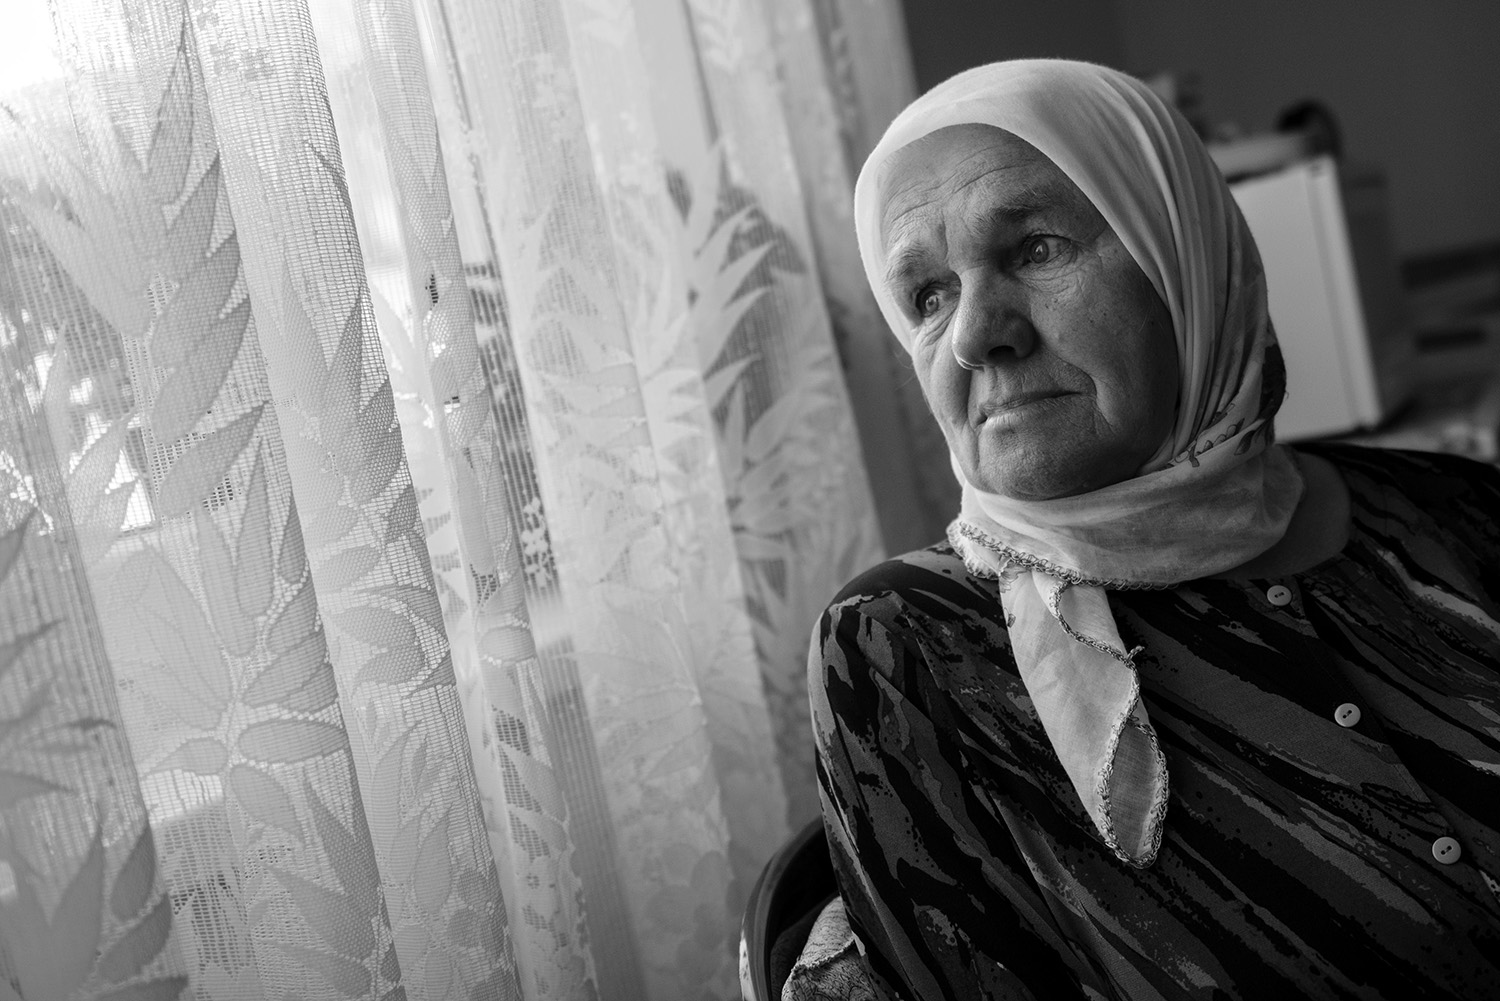 Meira Dogaz (Bosniak) lives near the Memorial Center in Potocari, her sons are buried there. In the genocide, she has lost three sons and husband. She does not believe Mladen Grujicic can take care of the memorial center and Bosniaks.